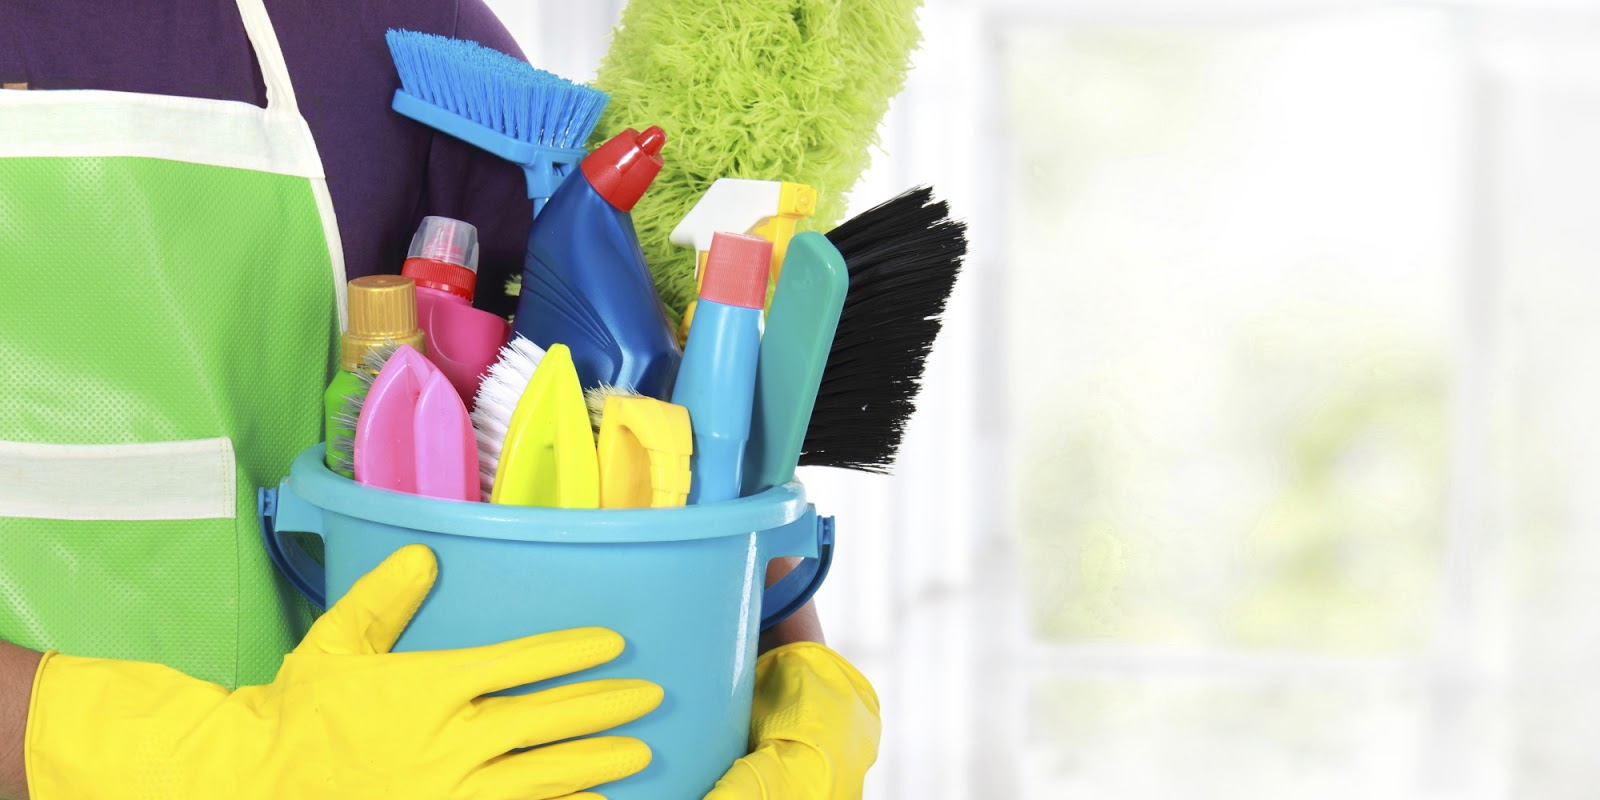 Tidy House Cleaning Service To Change Your Home As Uncluttered One 1